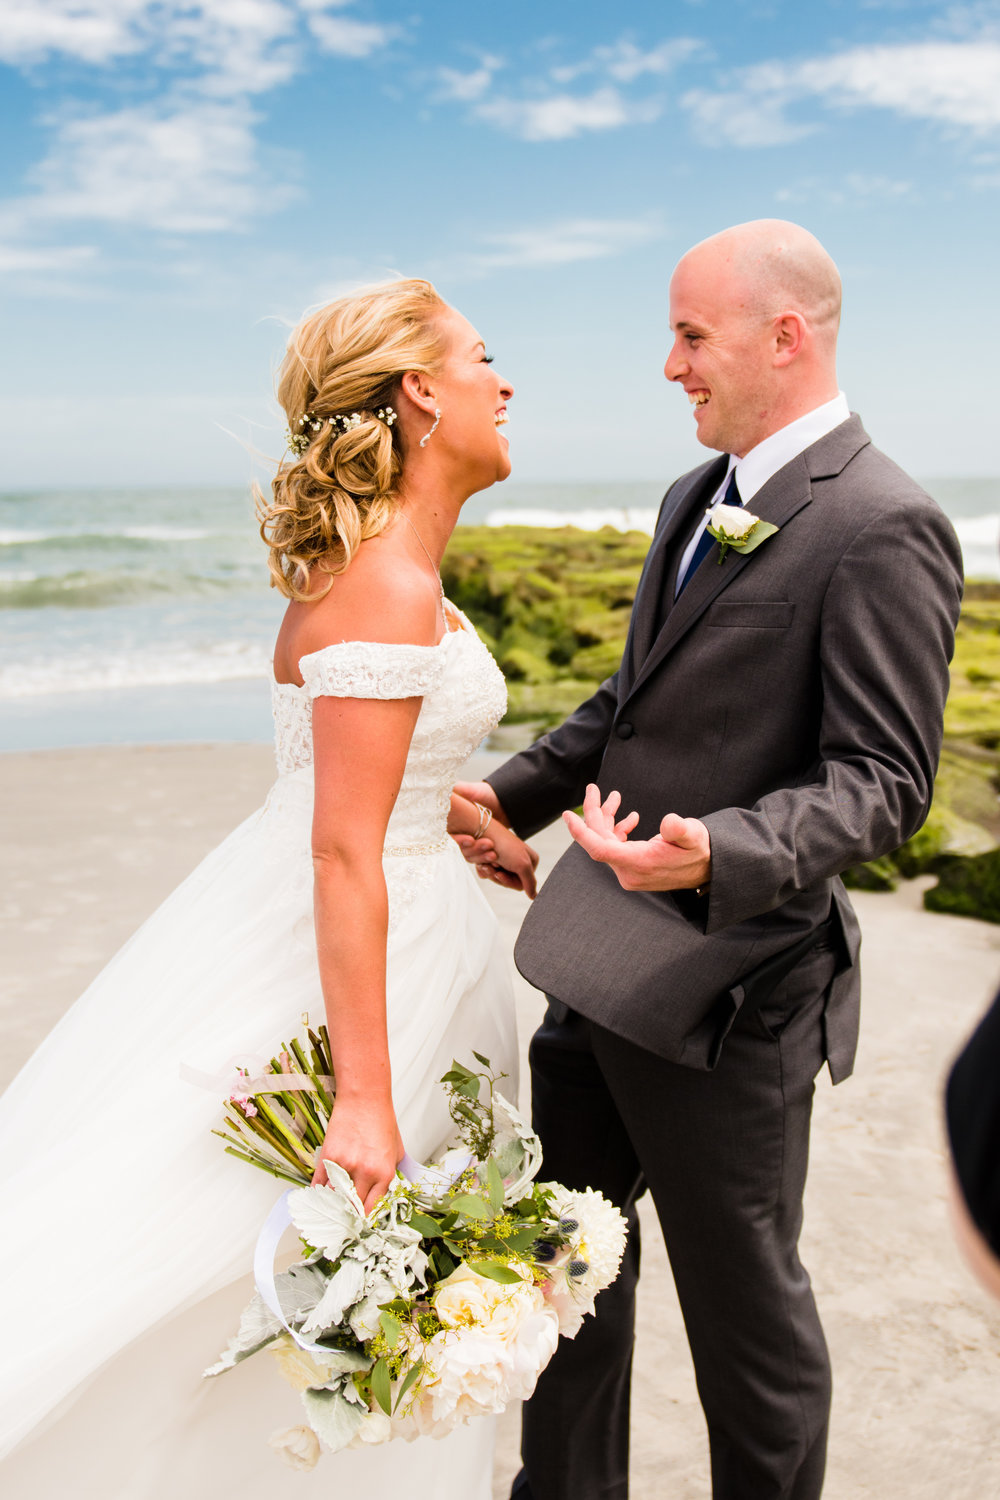 ICONA GOLDEN INN AVALON NJ WEDDING PHOTOGRAPHY  - 024.jpg